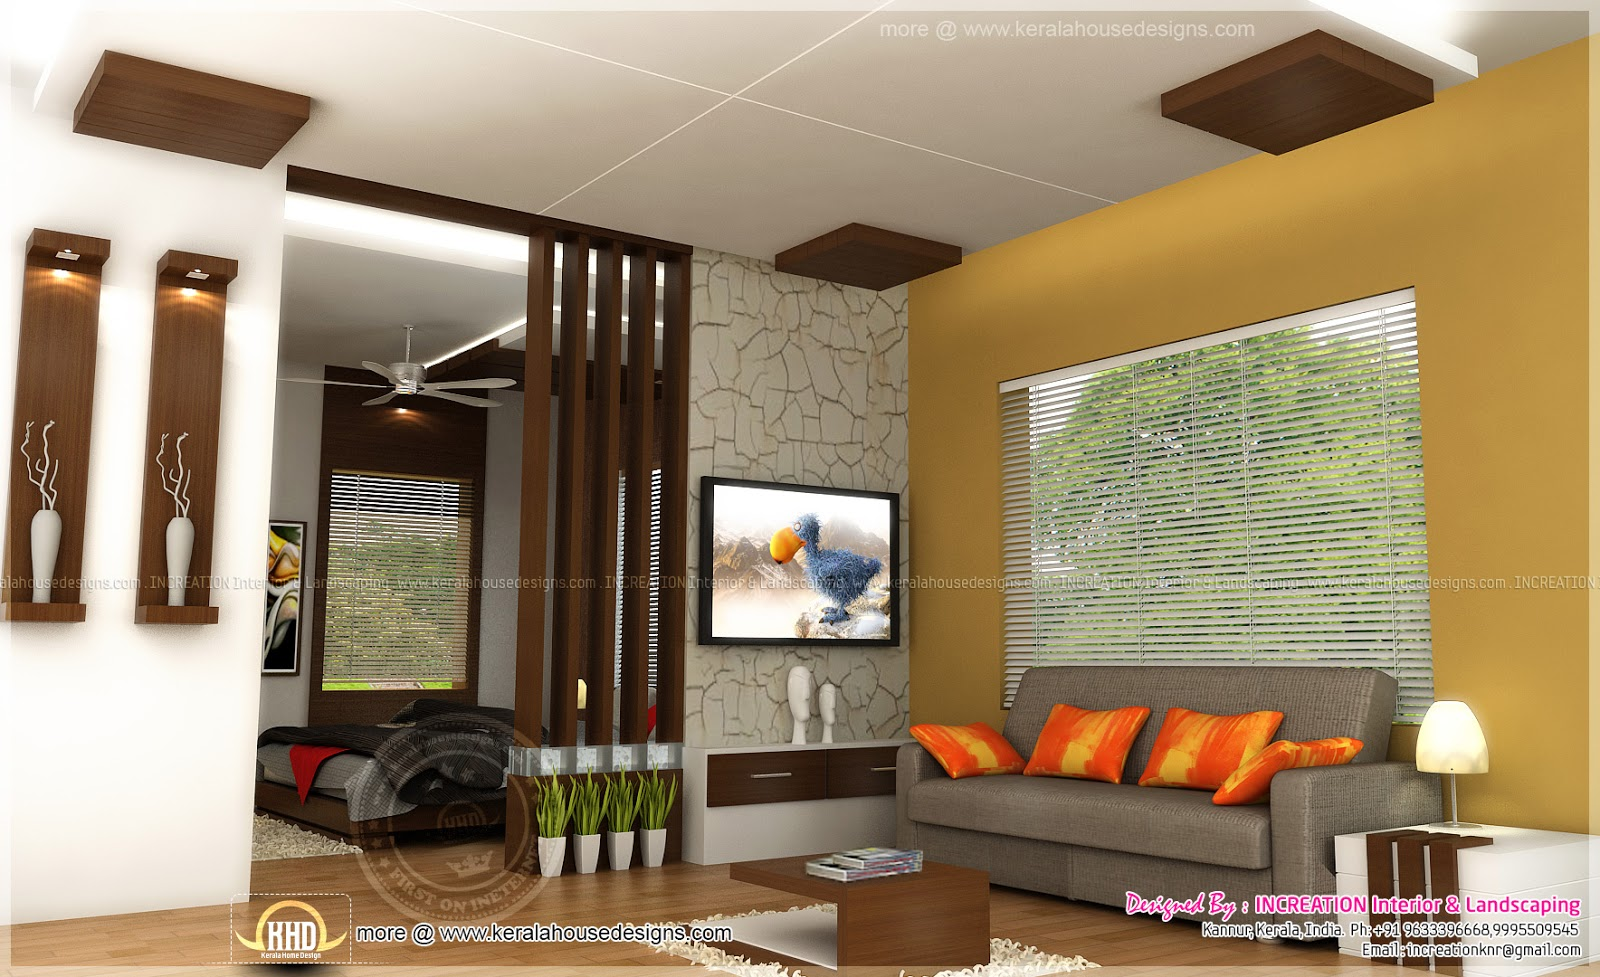 Interior designs from kannur kerala home kerala plans - Interior design of home ...